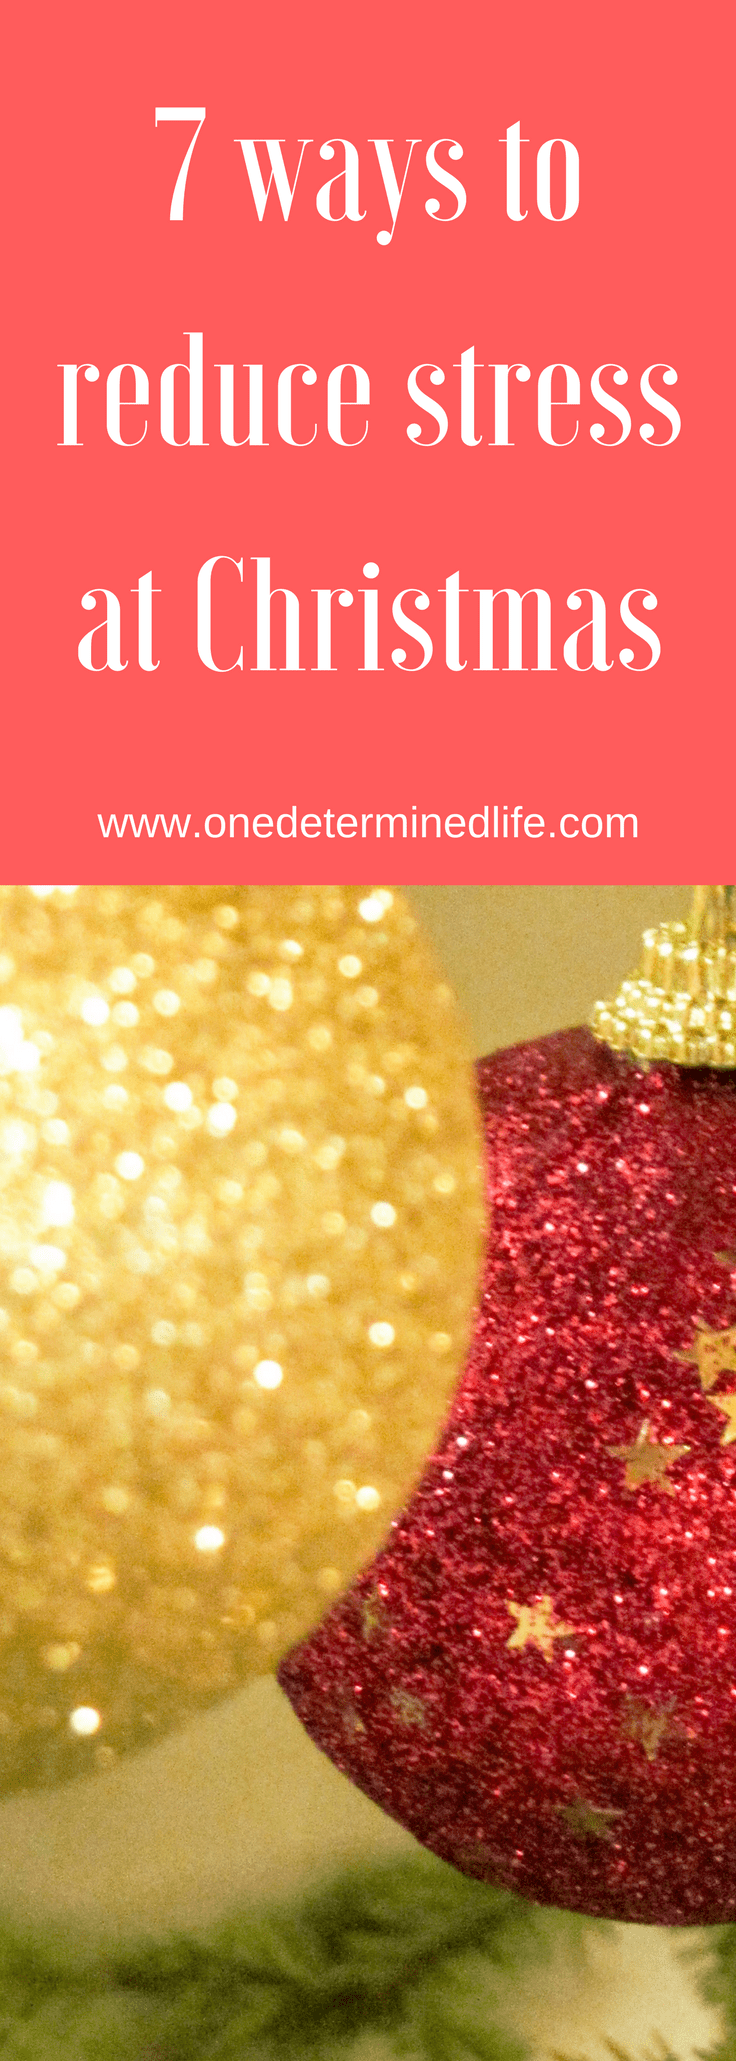 ways to reduce the stress at christmas. How to have a relaxing Christmas